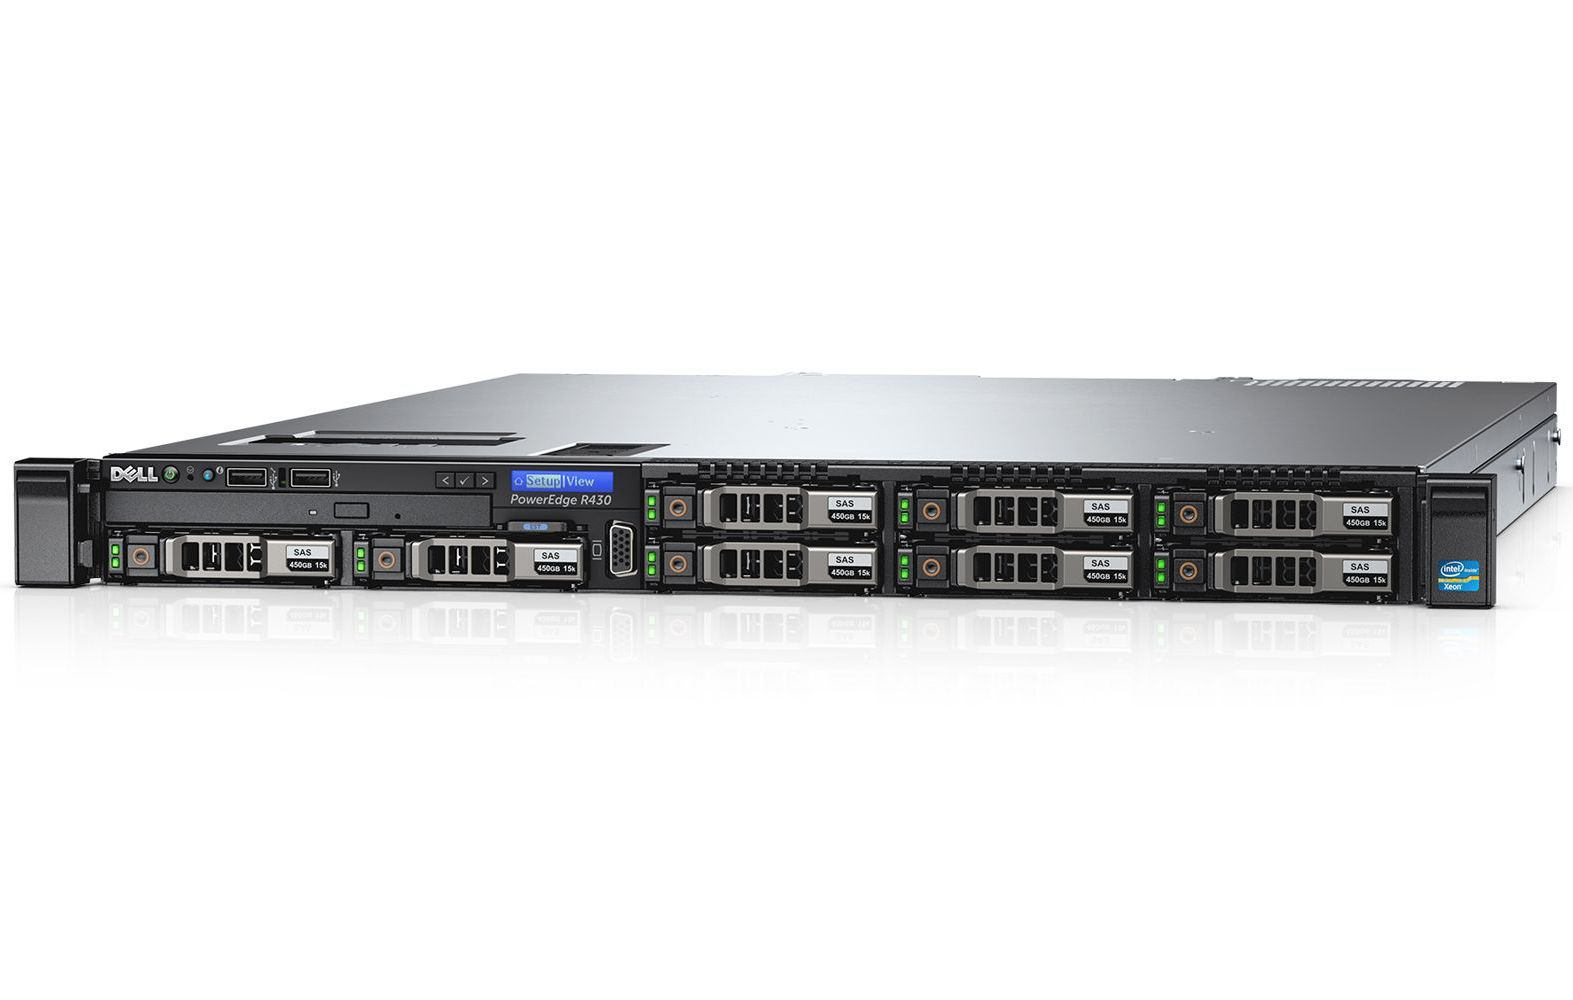 ff90c26cf7 DELL 210-ADLO - DELL PowerEdge R430 server 2.4 GHz Intel Xeon E5 v3 ...